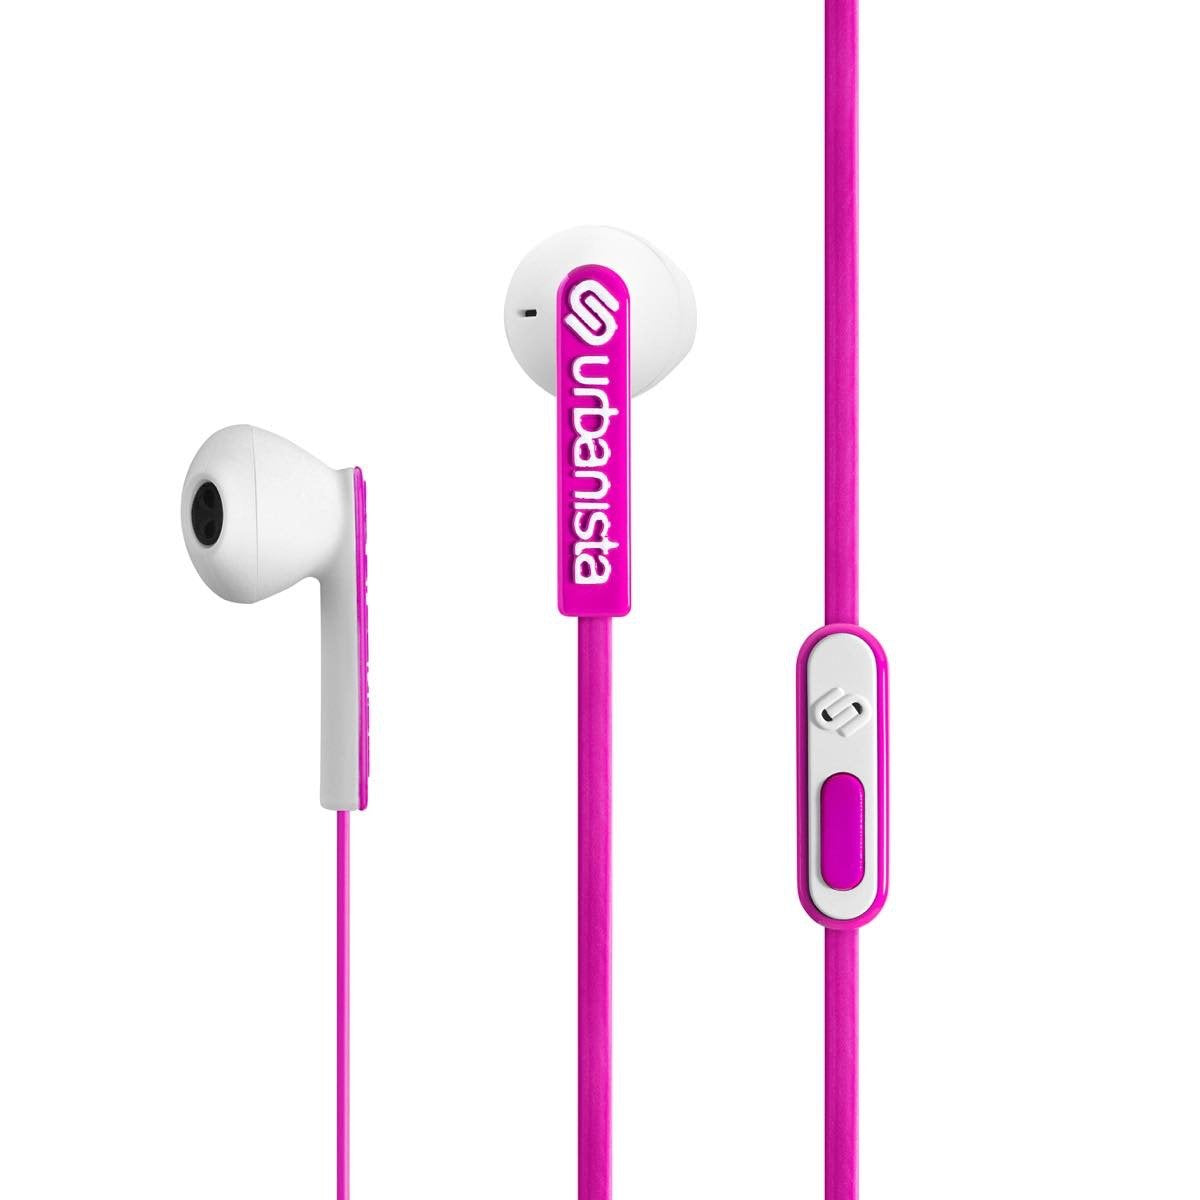 Urbanista San Francisco In-Ear Earphones pink [Accessories]